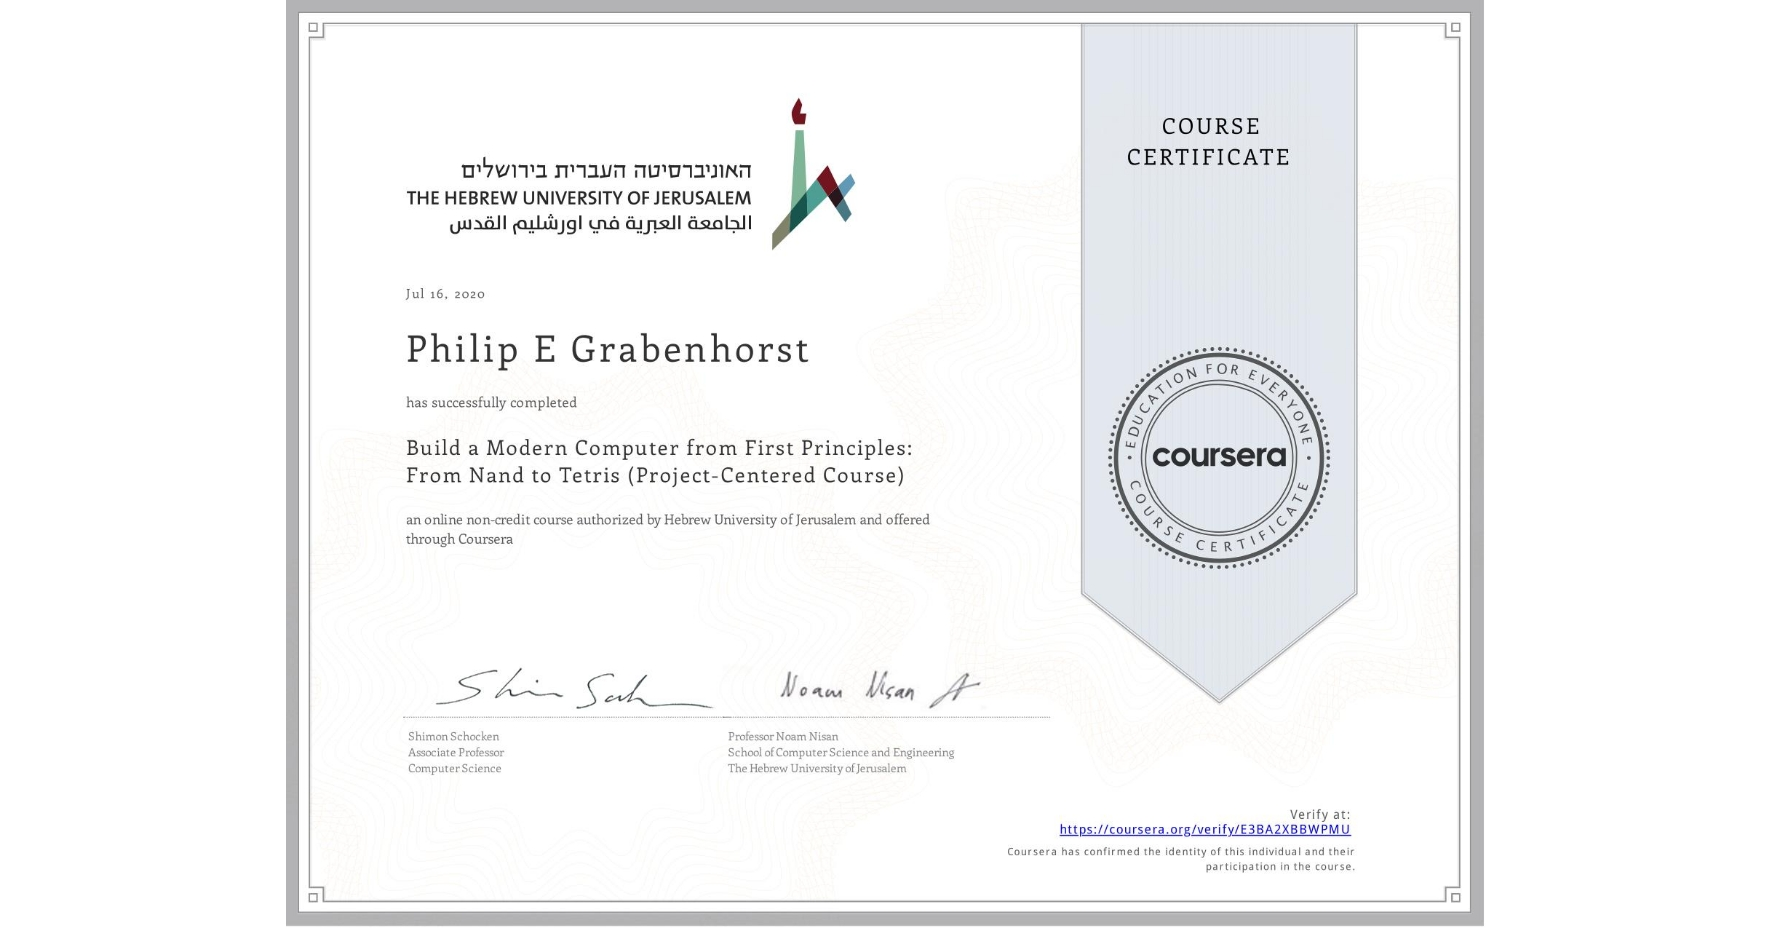 View certificate for Philip E Grabenhorst, Build a Modern Computer from First Principles: From Nand to Tetris (Project-Centered Course), an online non-credit course authorized by Hebrew University of Jerusalem and offered through Coursera